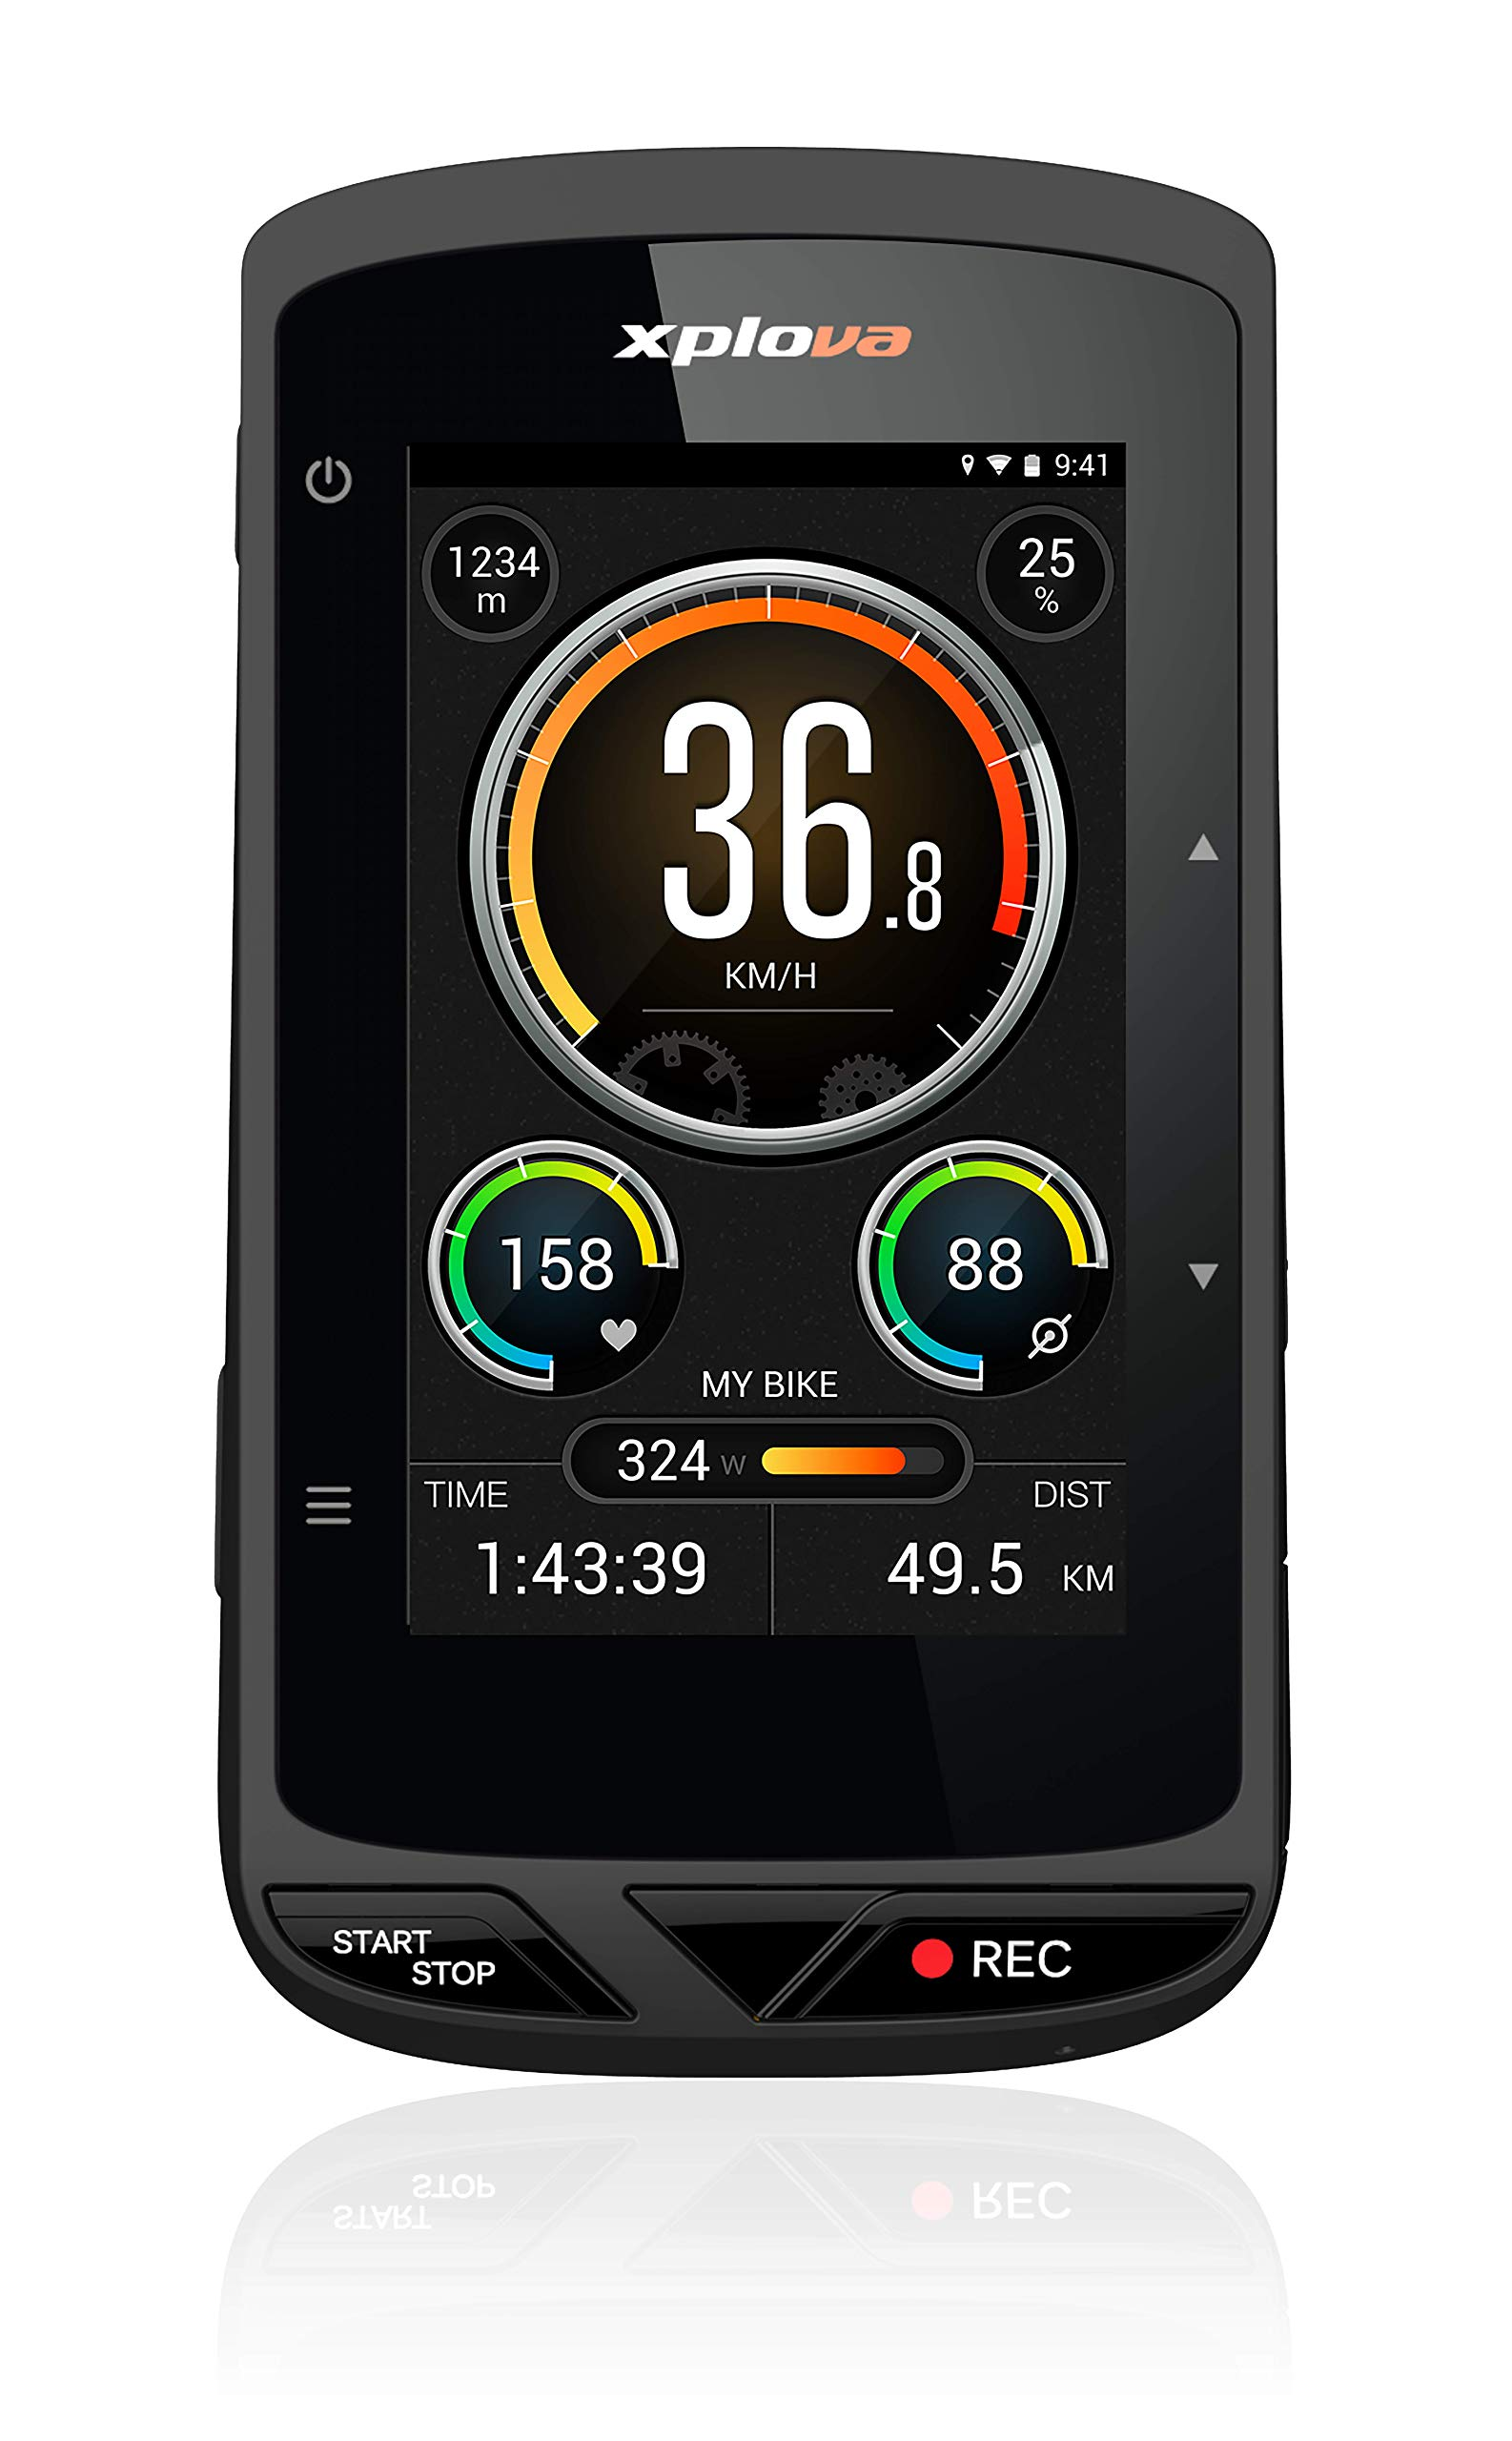 XPLOVA X5 Evo GPS Cycling Computer with Dash Cam - Bike Computer with 3'' Touchscreen Color Display - Bike GPS Route Planning OSM Free Worldwide Map - 120 Degree Wide-Angle Bike Action Camera - Ant+ by XPLOVA